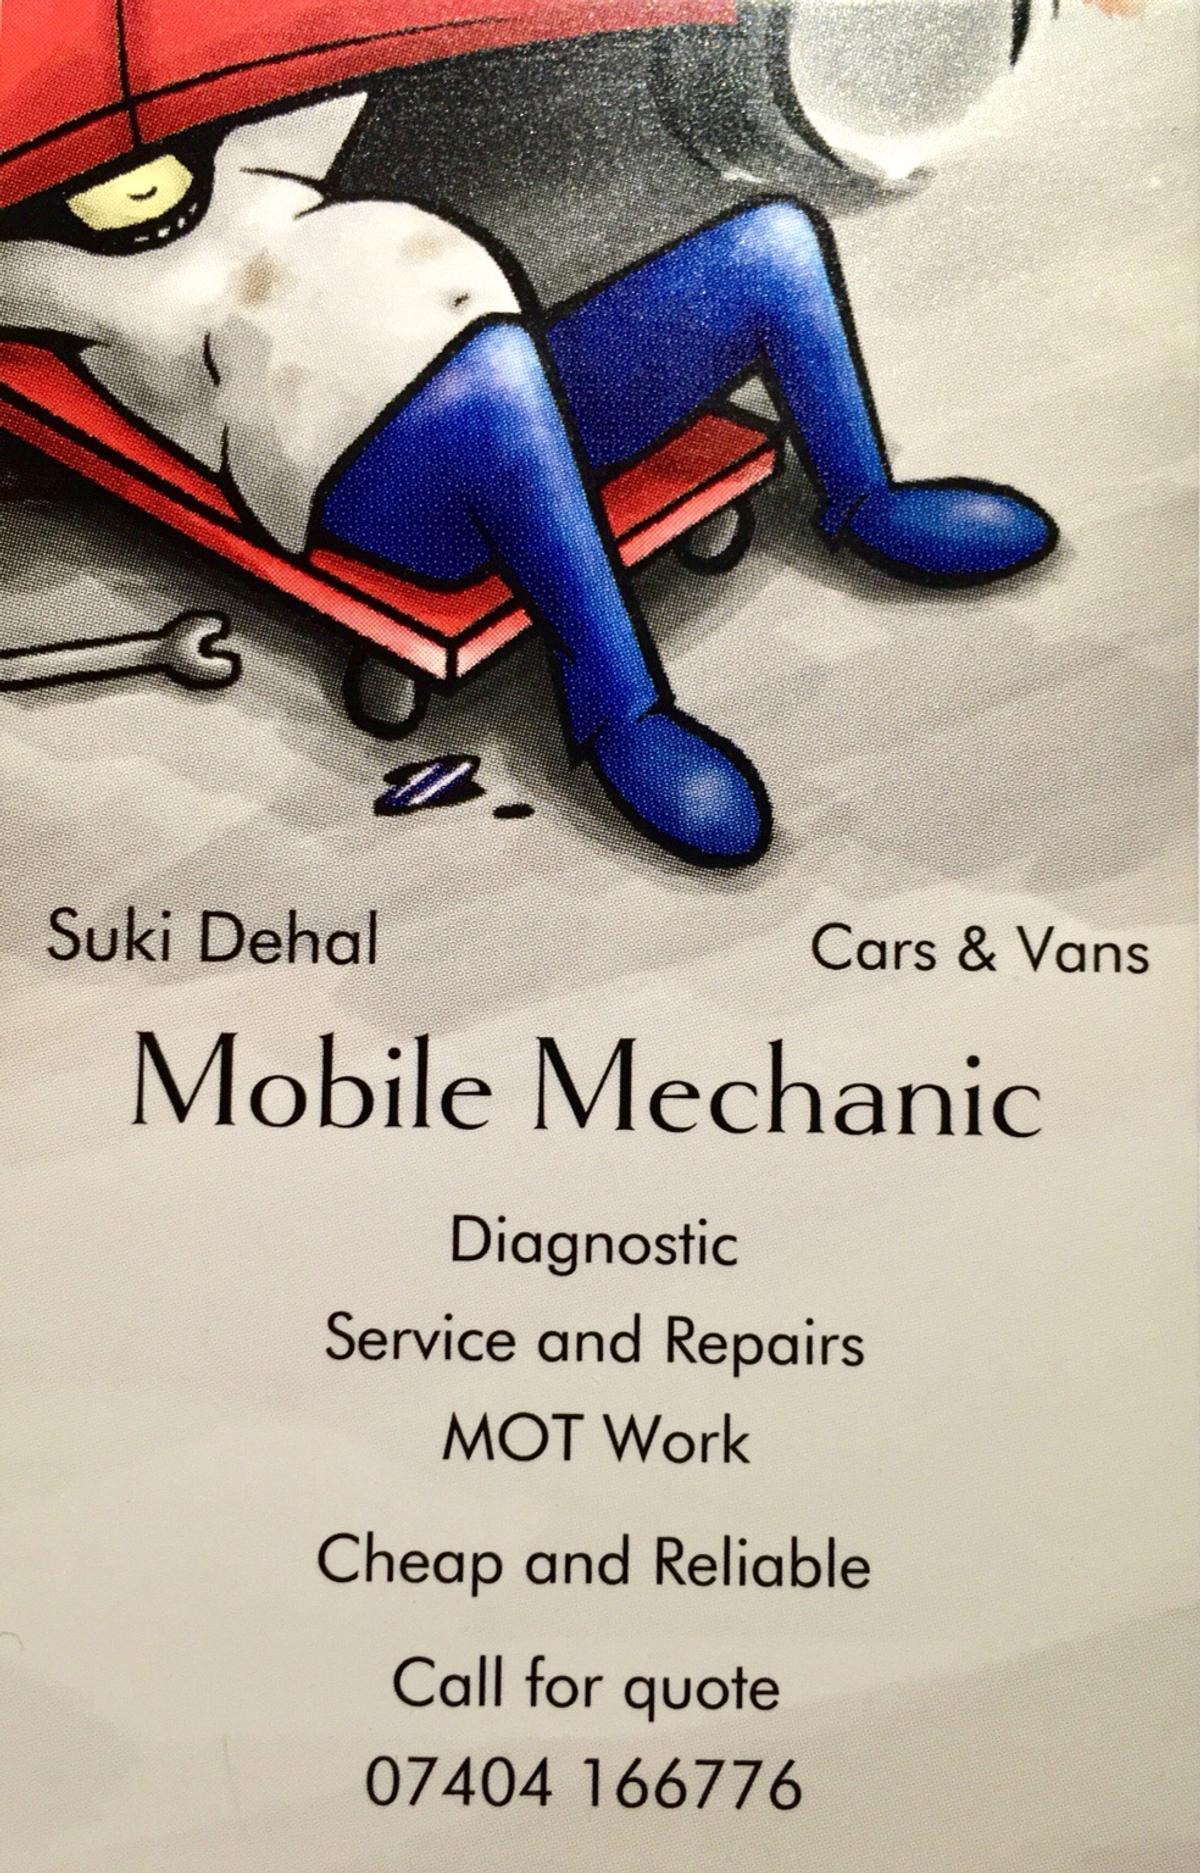 Mobile Mechanic for Dudley and Surroundings